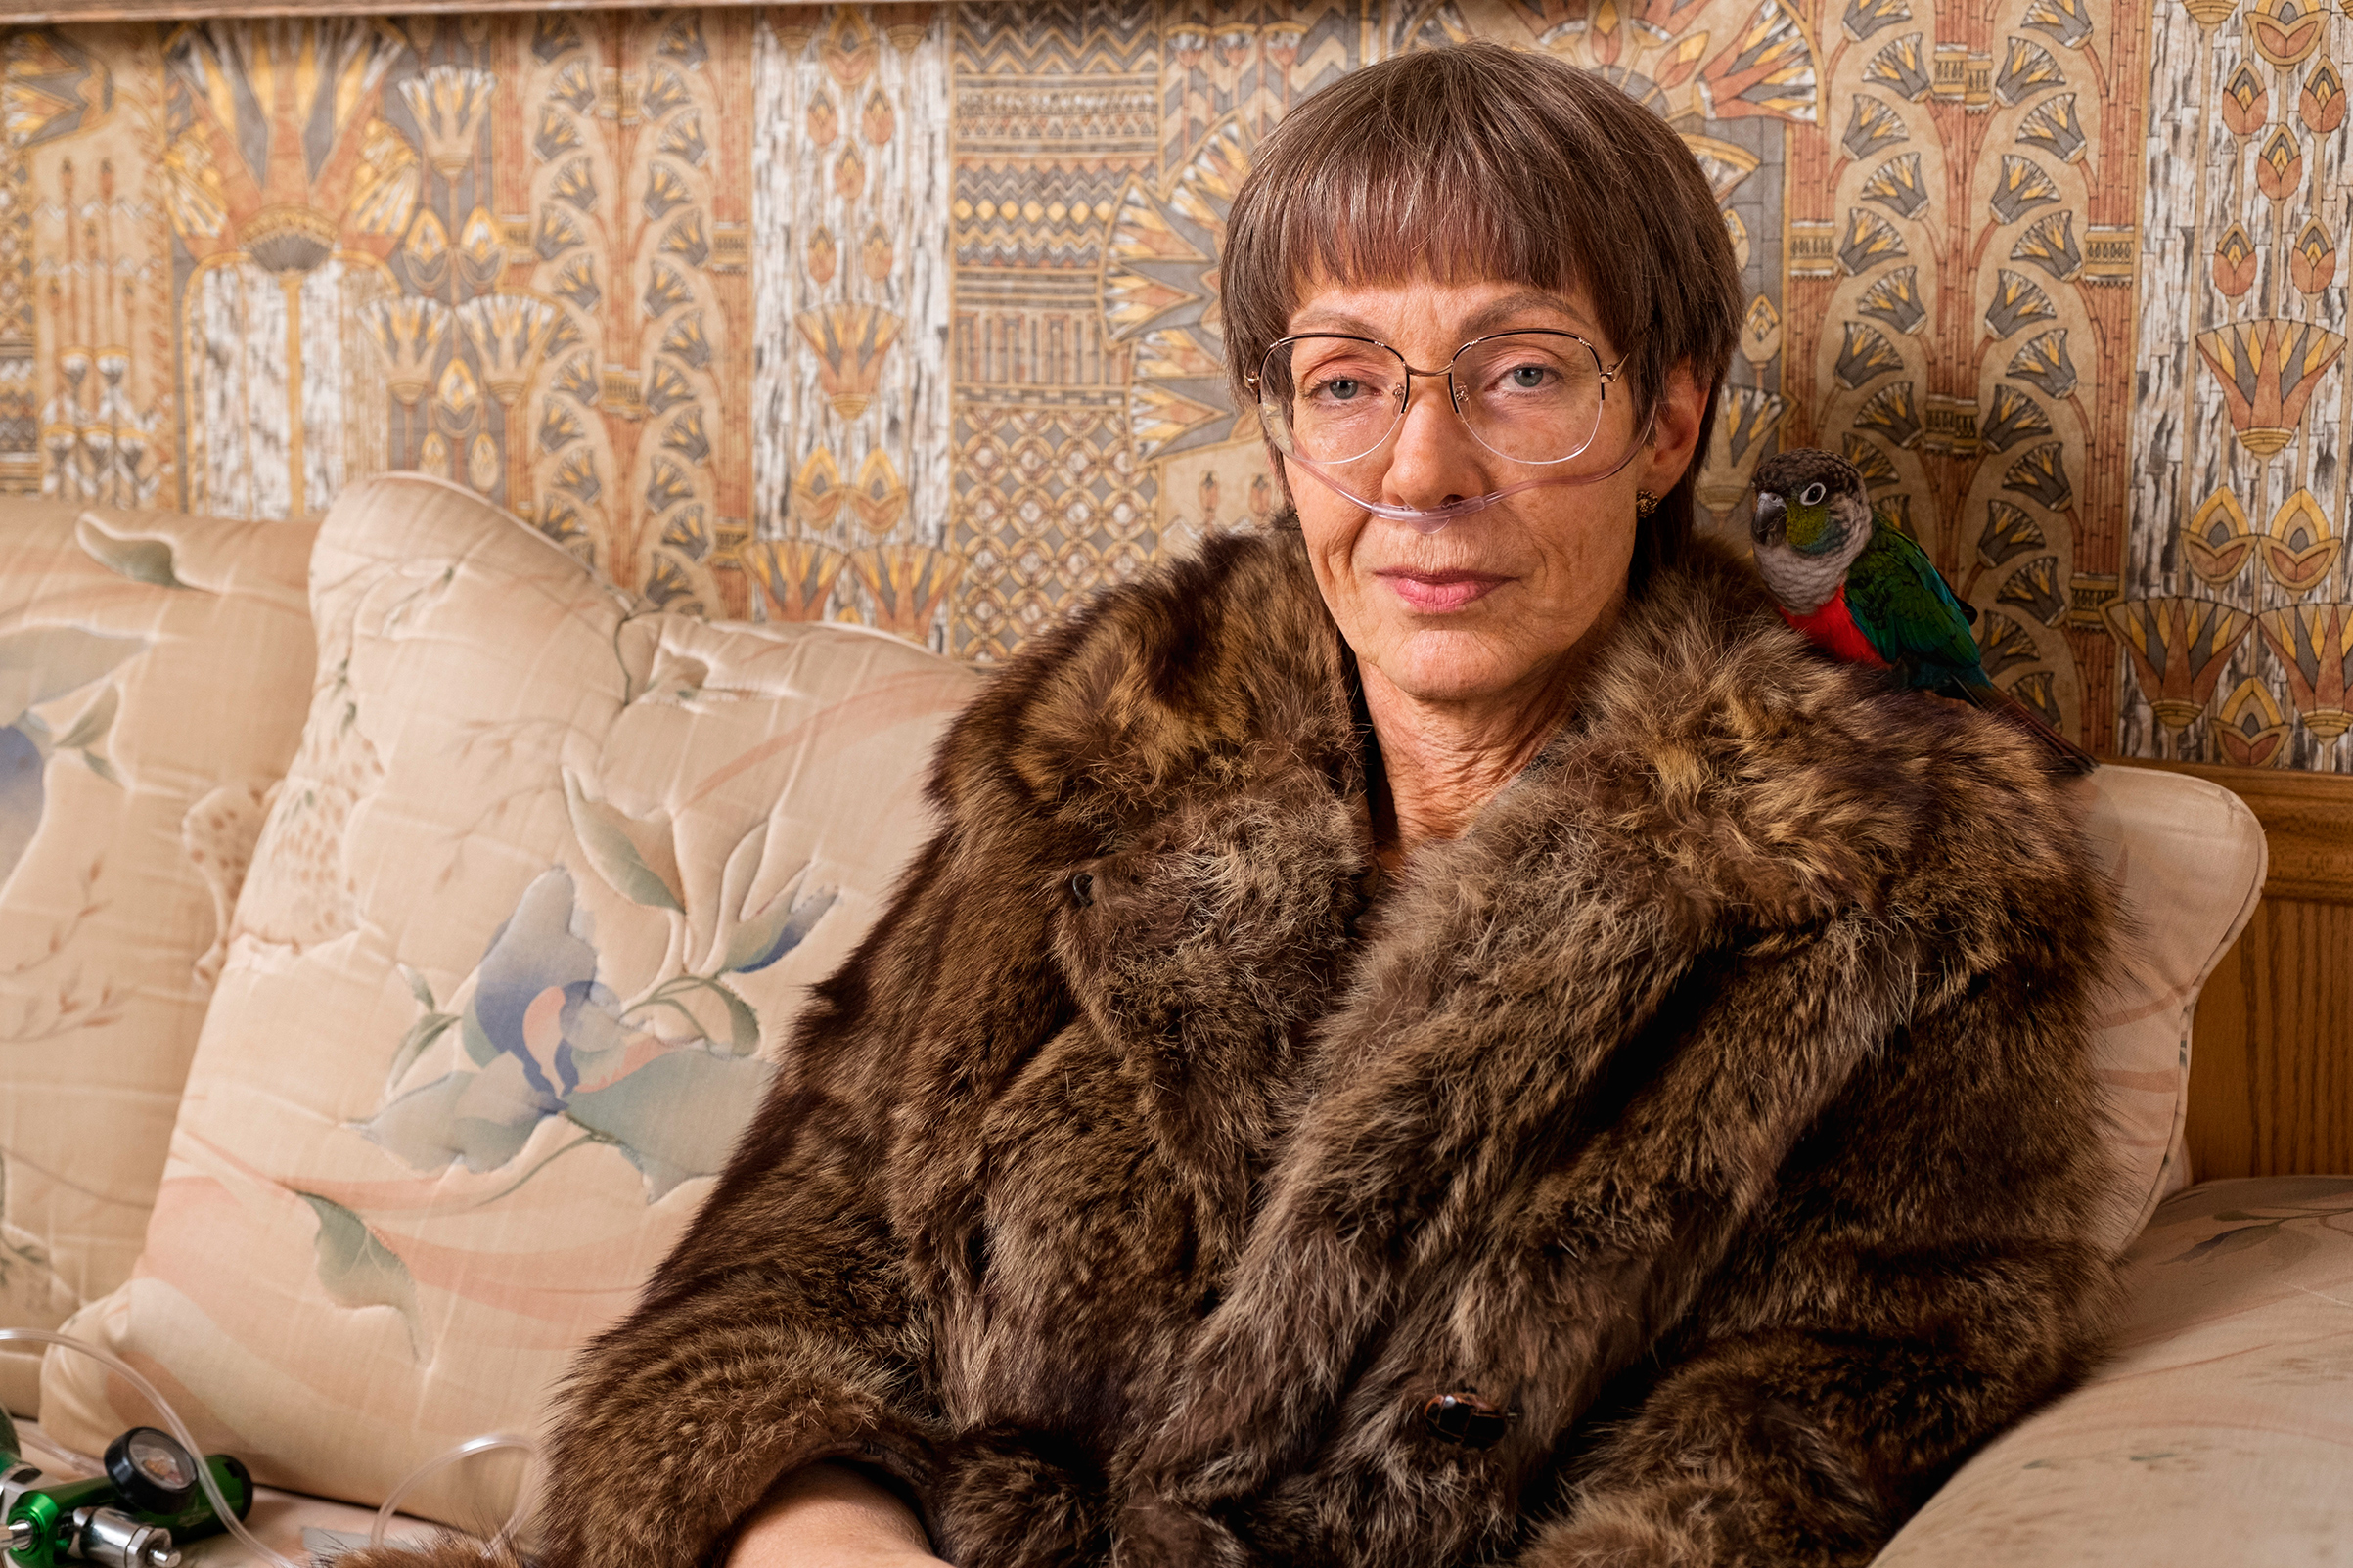 Allison Janney Nudography allison janney is one tough mother in 'i, tonya' | time